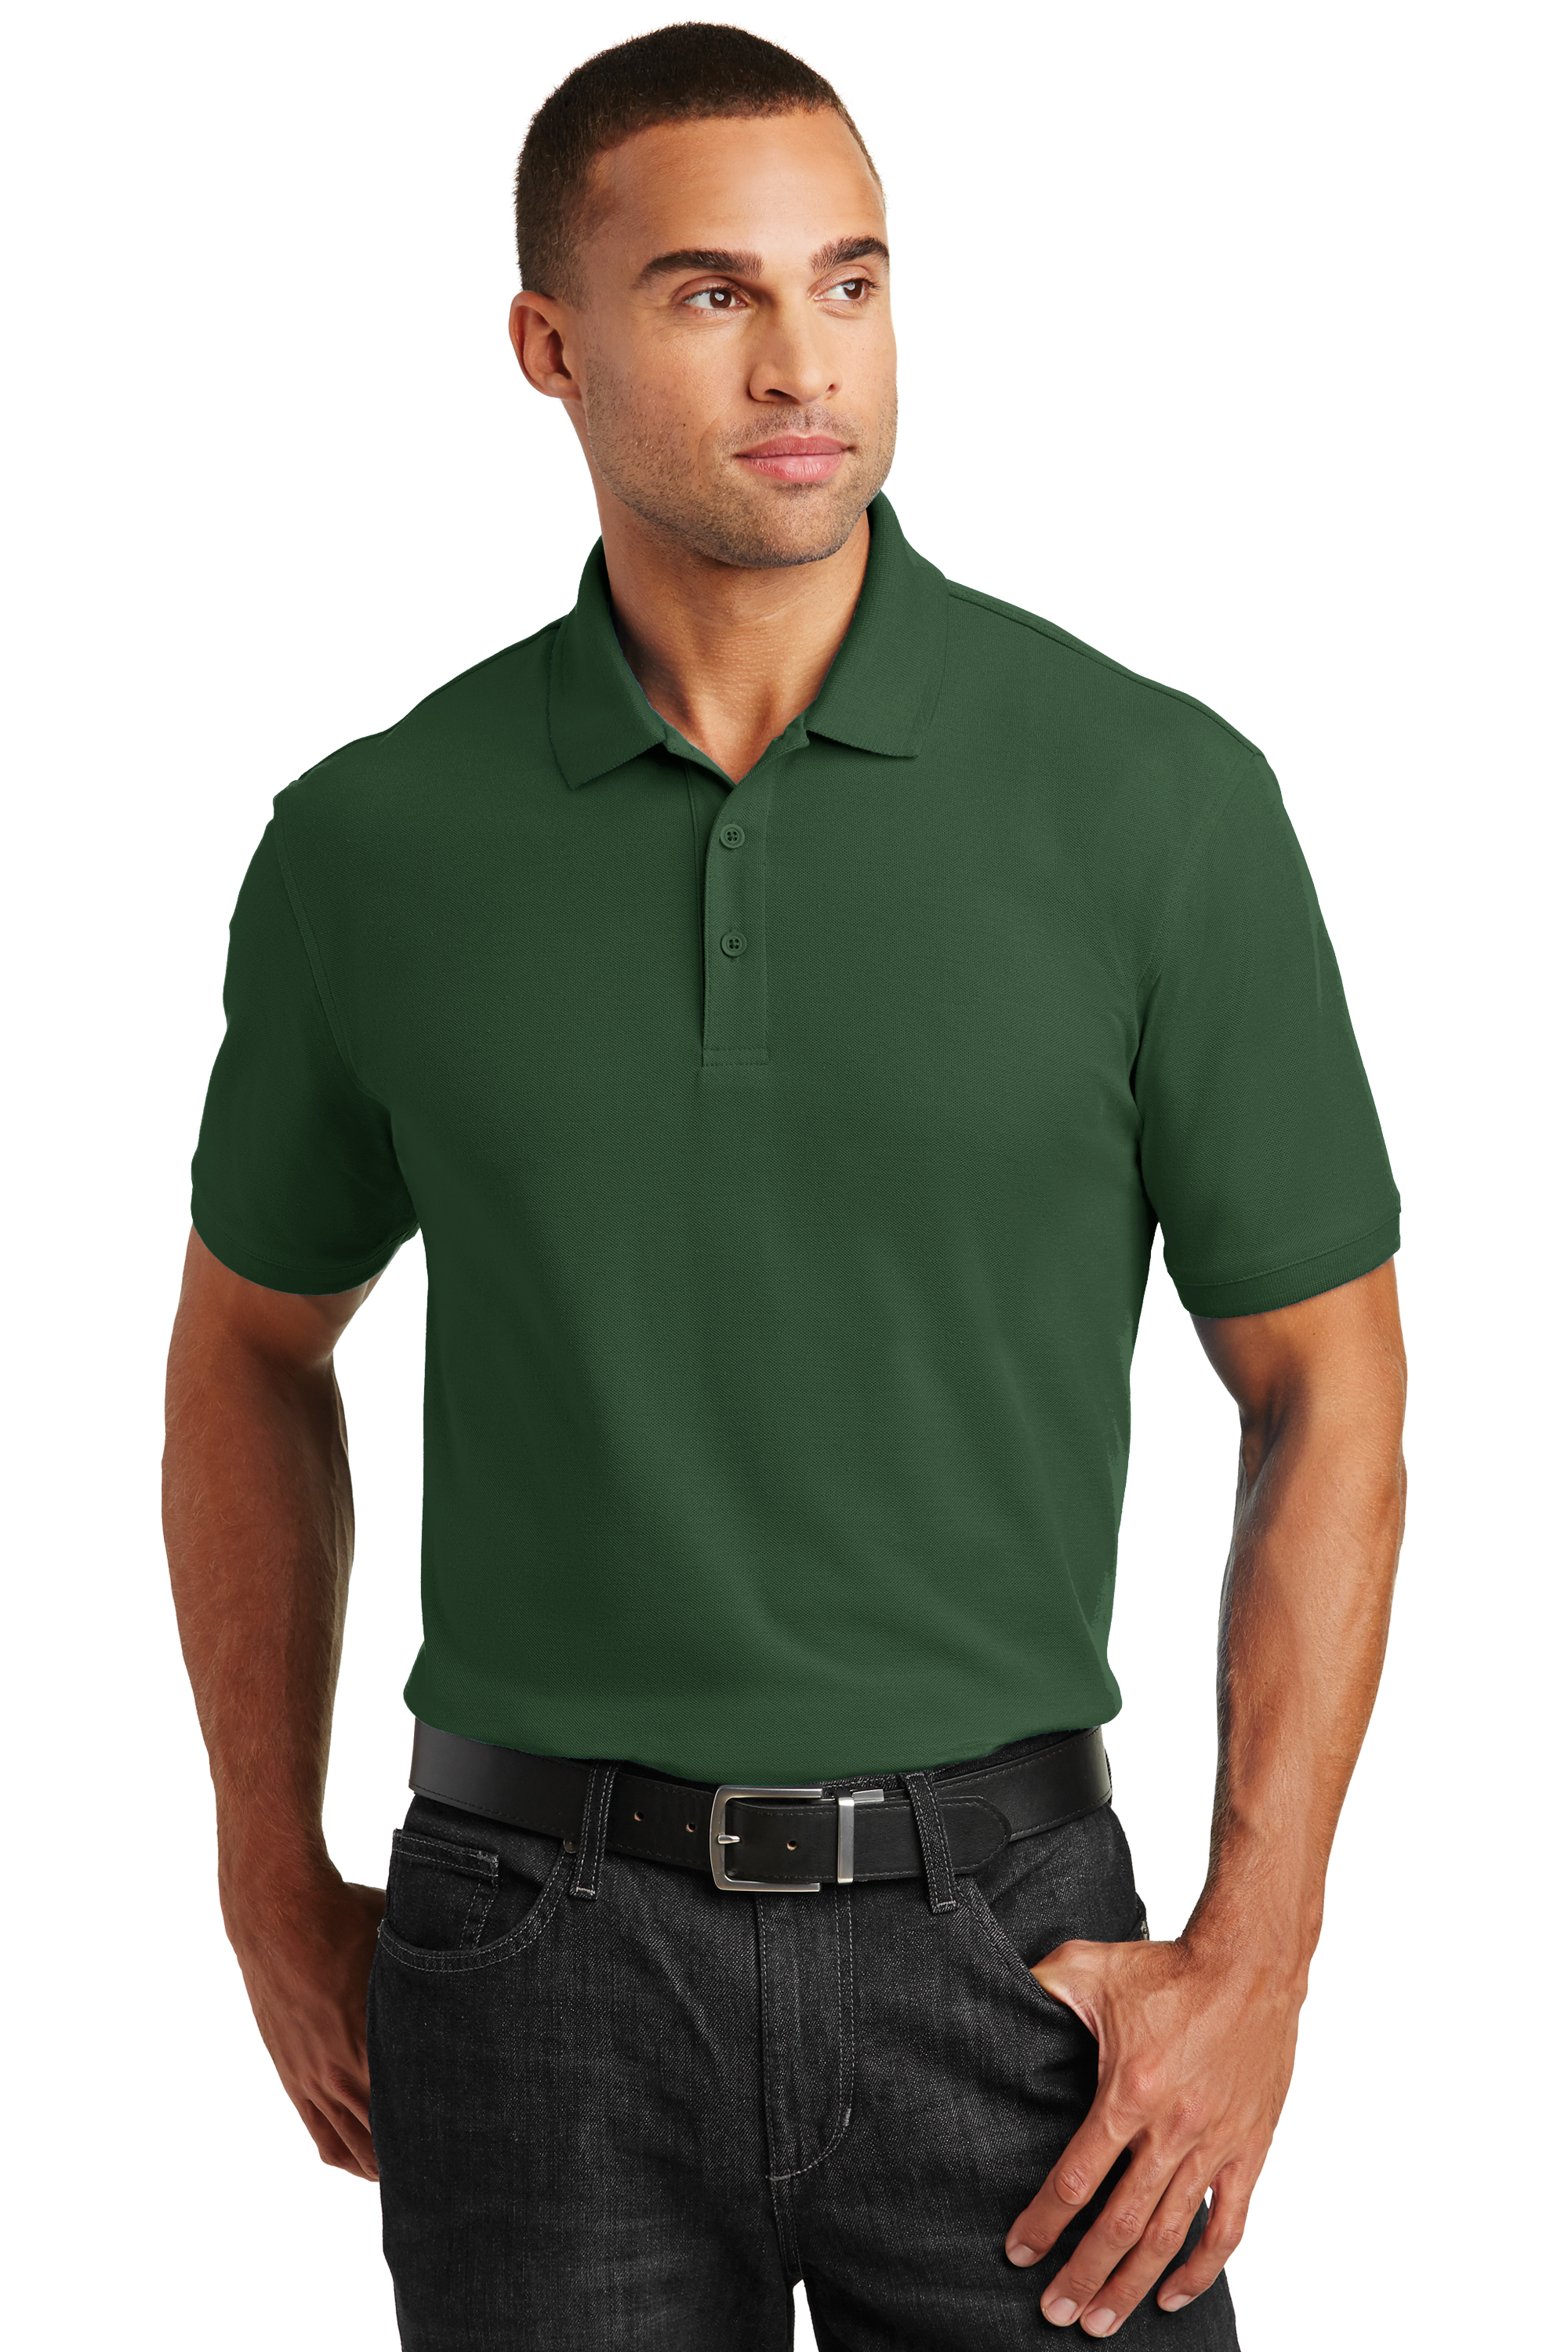 aef6bad691bb ... Men s Core Classic Pique Polo. K100. Sale! Port Authority Graphite   Port Authority Graphite  Port Authority Graphite ...